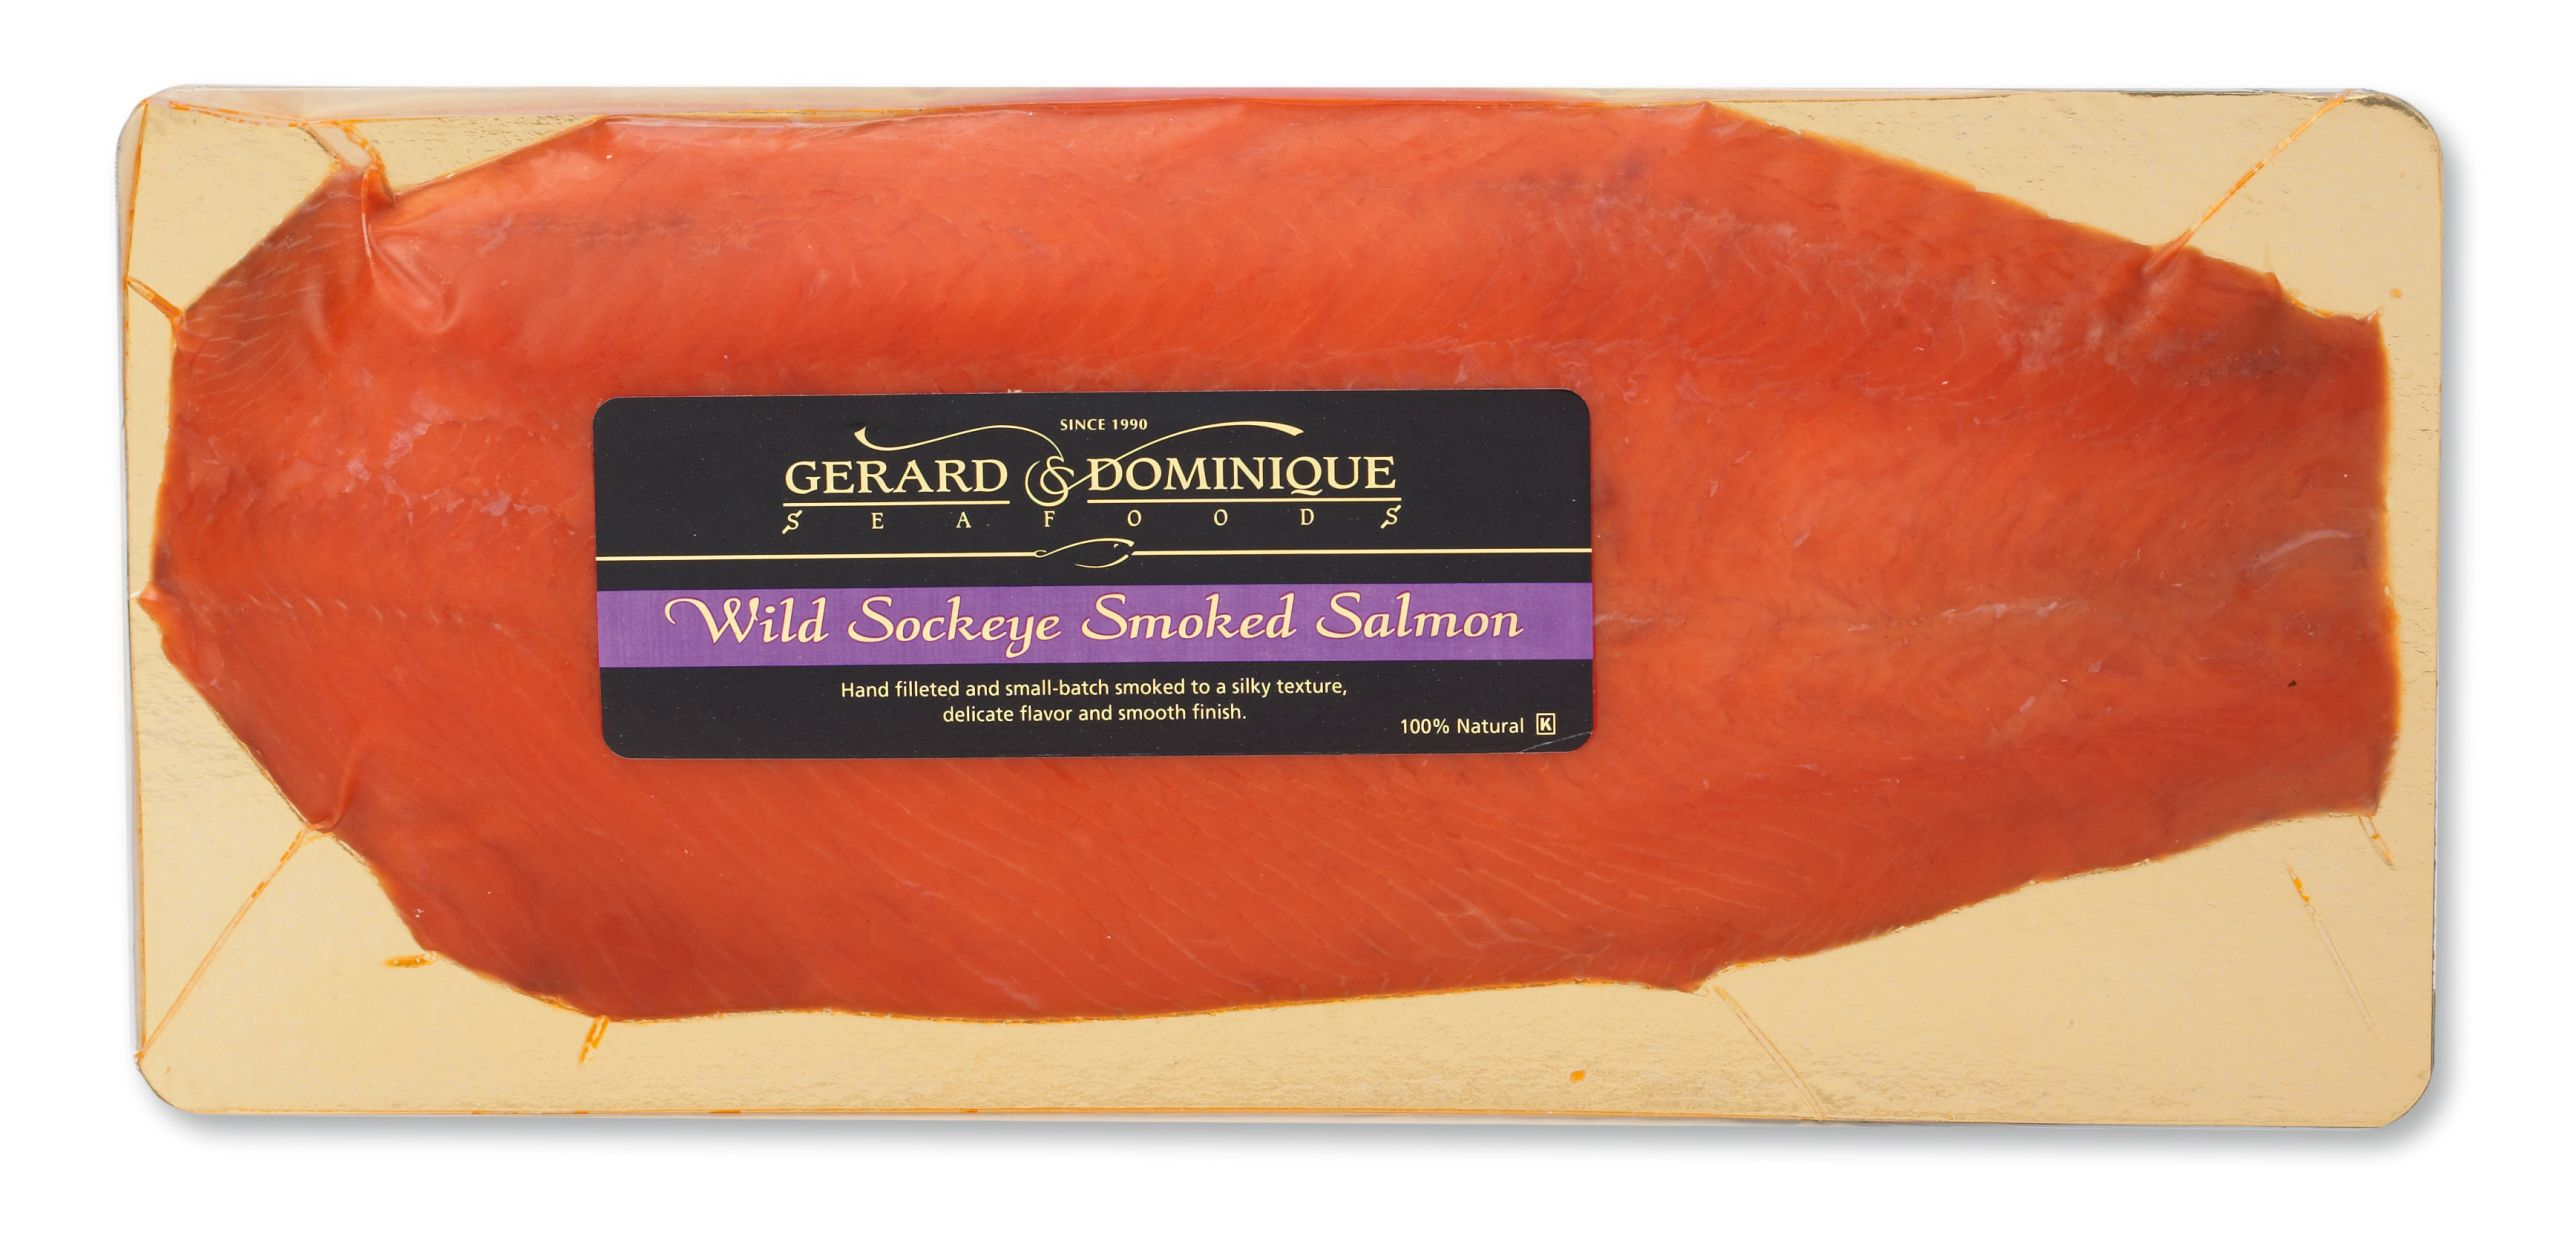 Smoked Salmon Brands  SeaBear pany Earns Non GMO Project Verification For